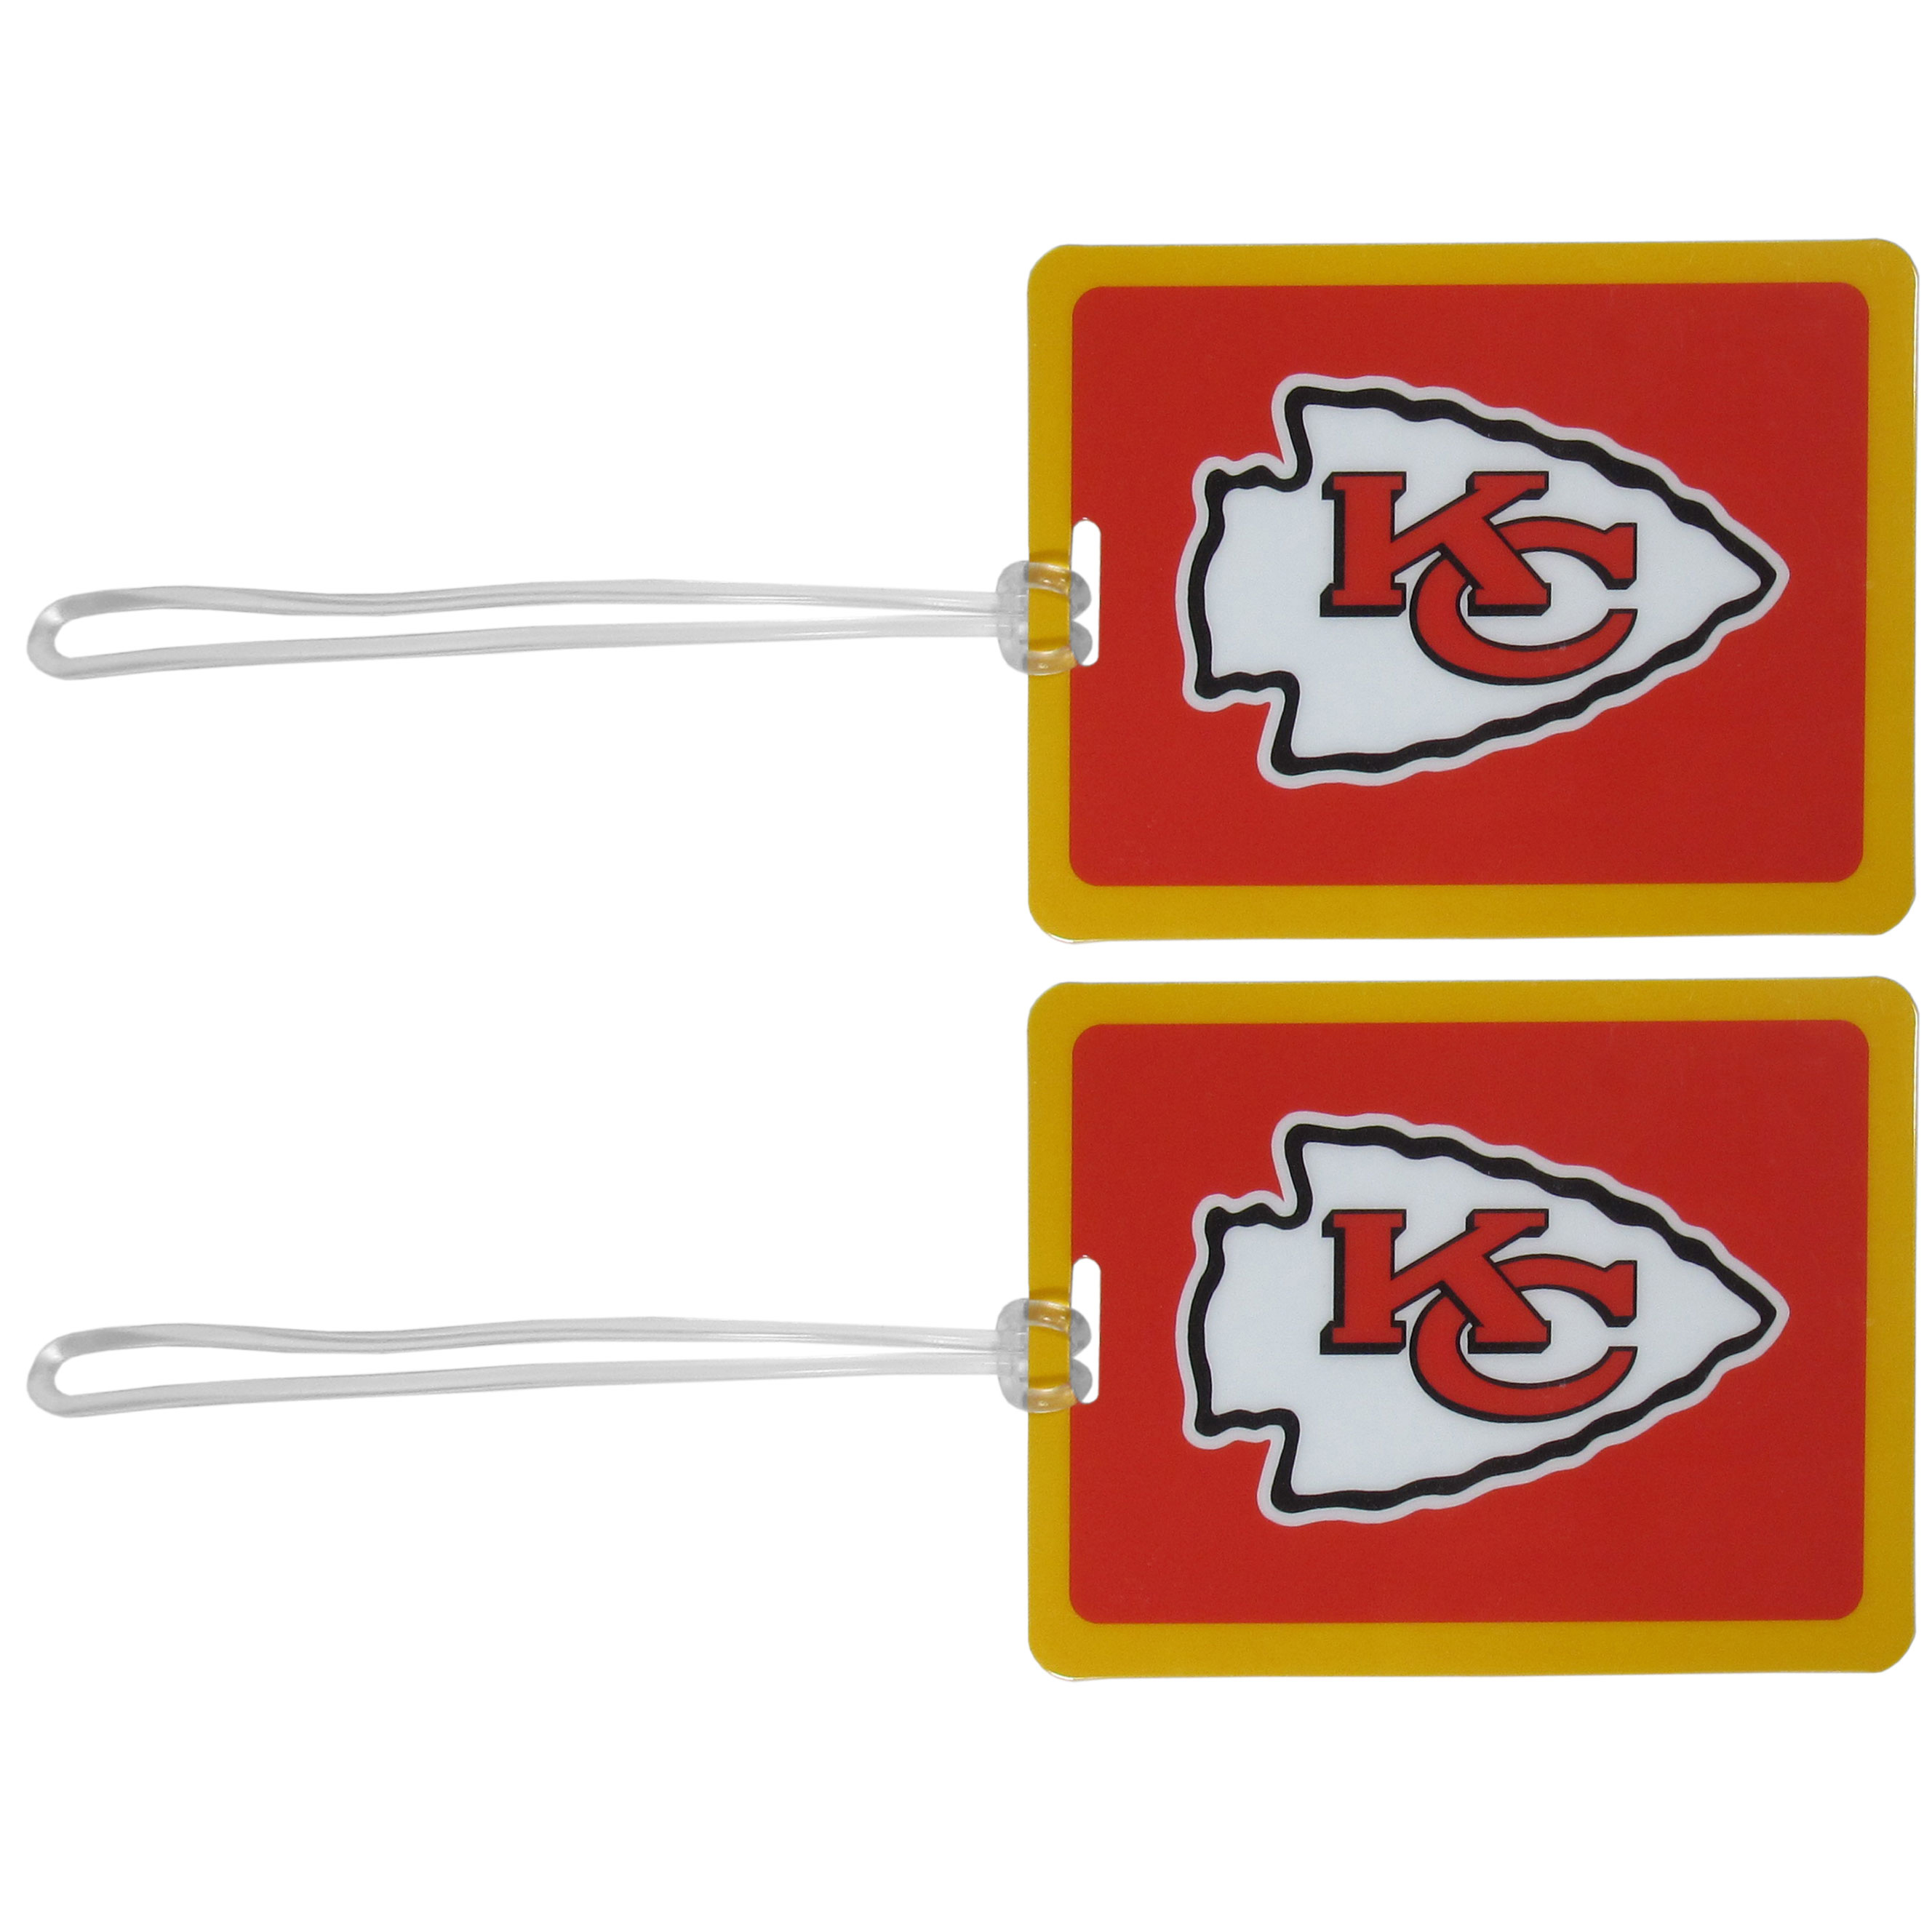 Kansas City Chiefs Vinyl Luggage Tag, 2pk - Tired of trying to spot your suitcase or bag in a sea of luggage? Try our large and colorful Kansas City Chiefs luggage tags. The tag is 4x3 inches and has a 5 inch cord to attach it easily to your bags, backpacks or luggage. The front of the tag features the team logo in a bright, team colored background and you can write you name, address and phone number on the back of the tag.